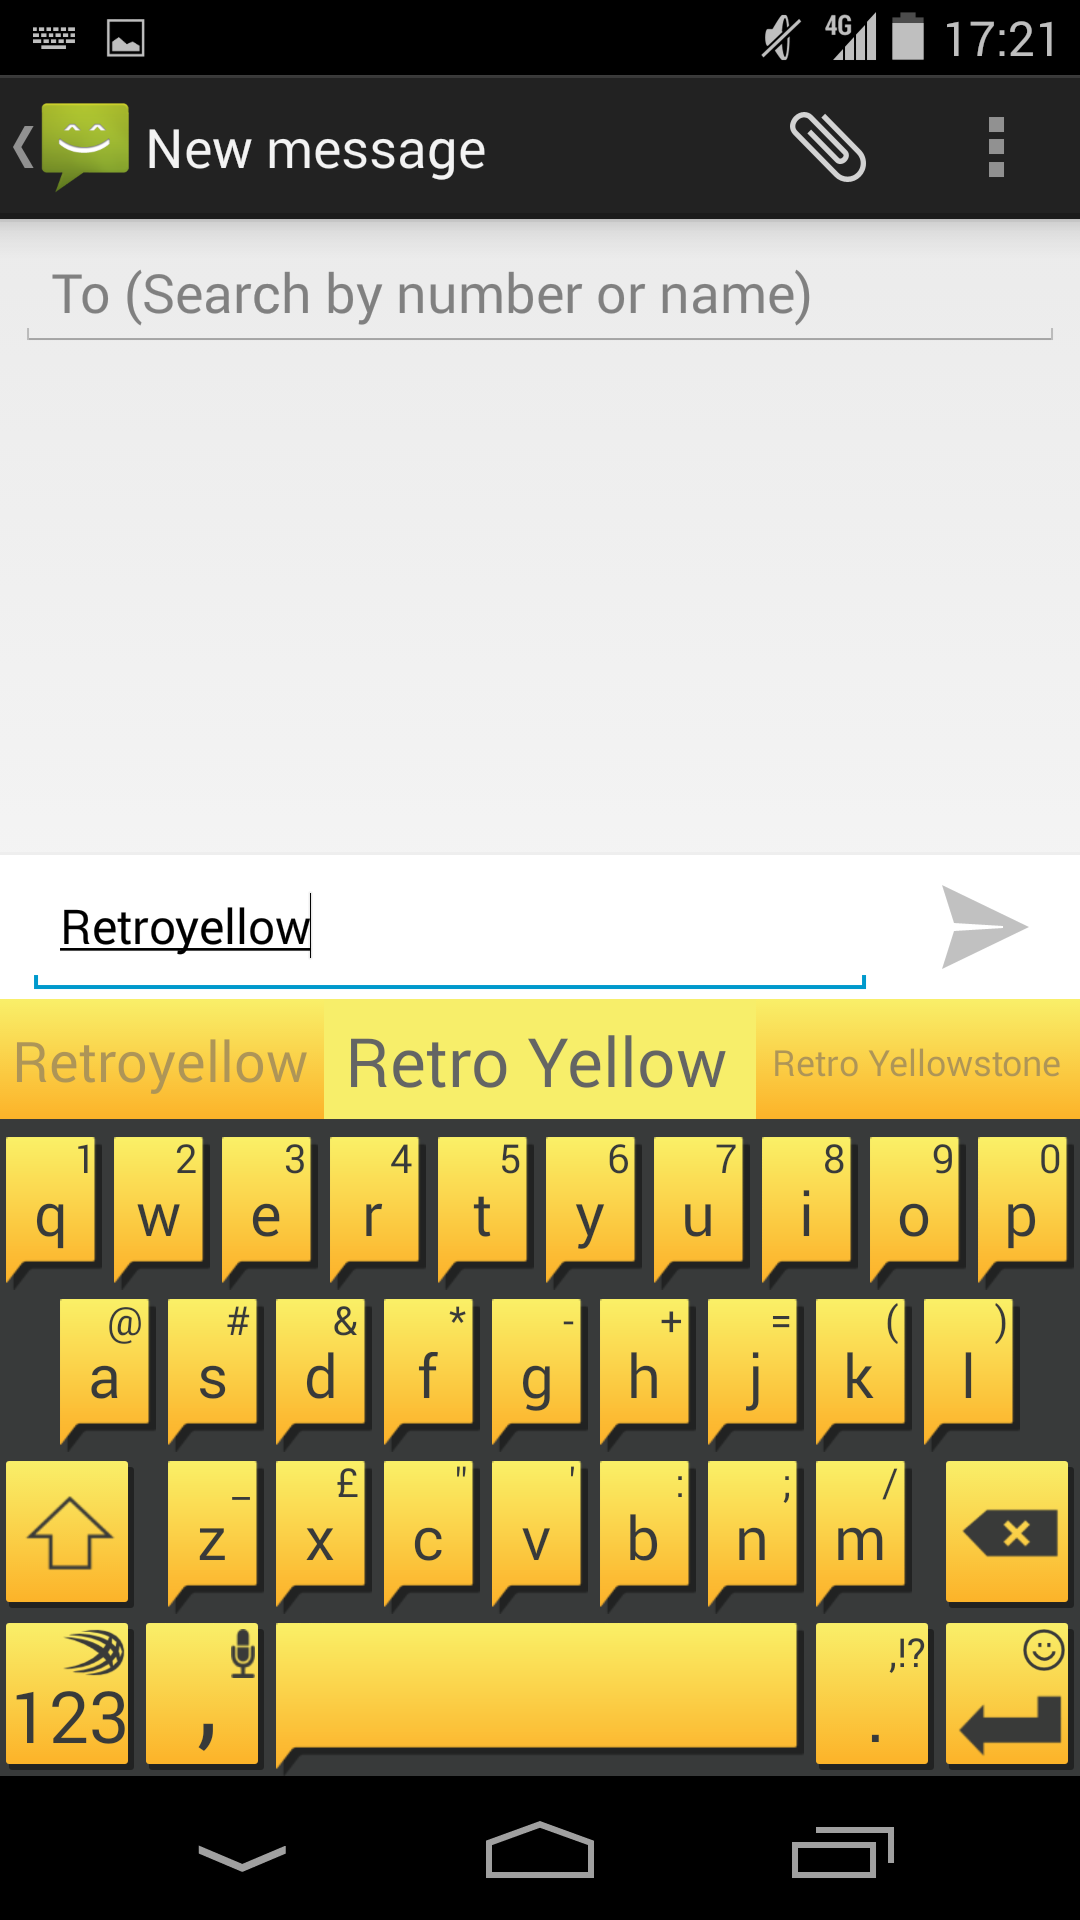 Retro Yellow - punch up your keyboard with this theme from